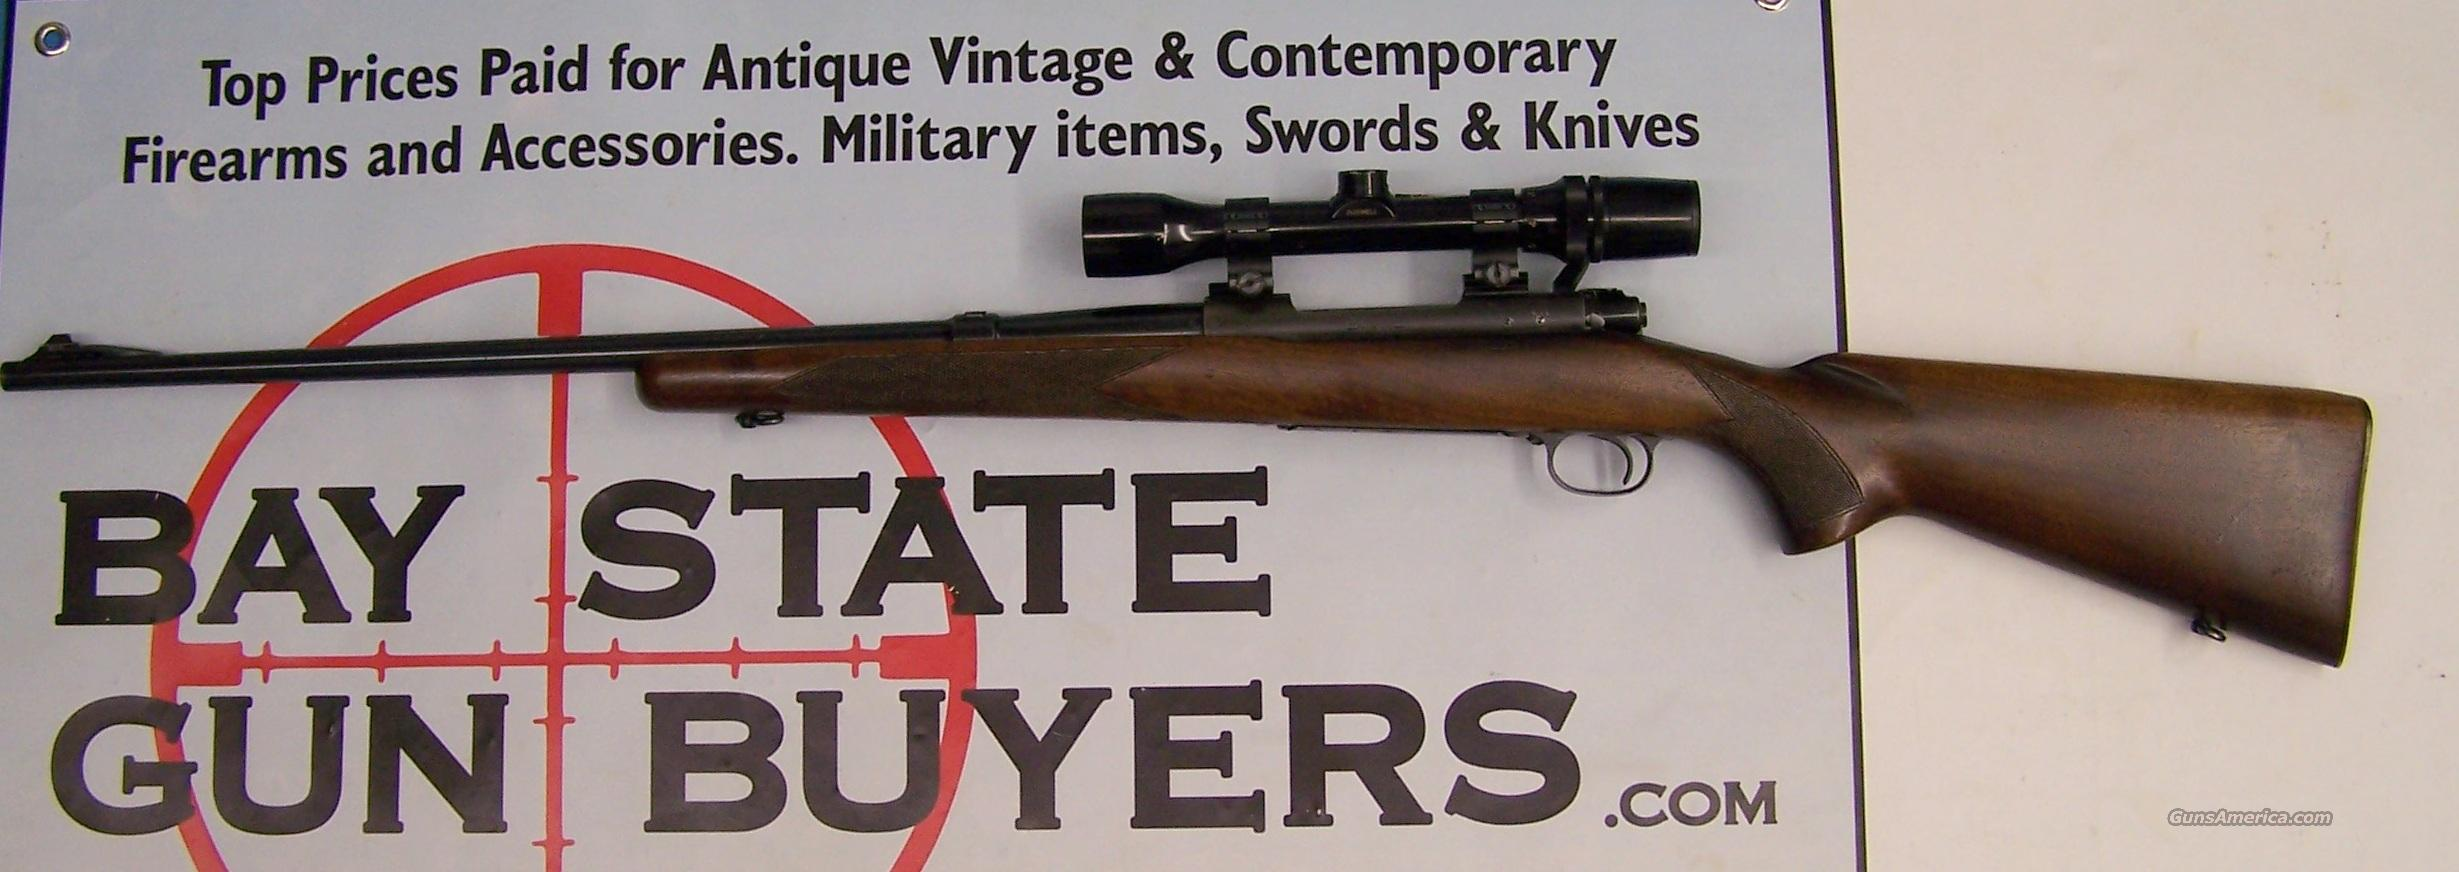 winchester model 70 dating Items below represent firearms that are no longer in current production by winchester repeating arms model 70 model 70 - past products model 70 past products.